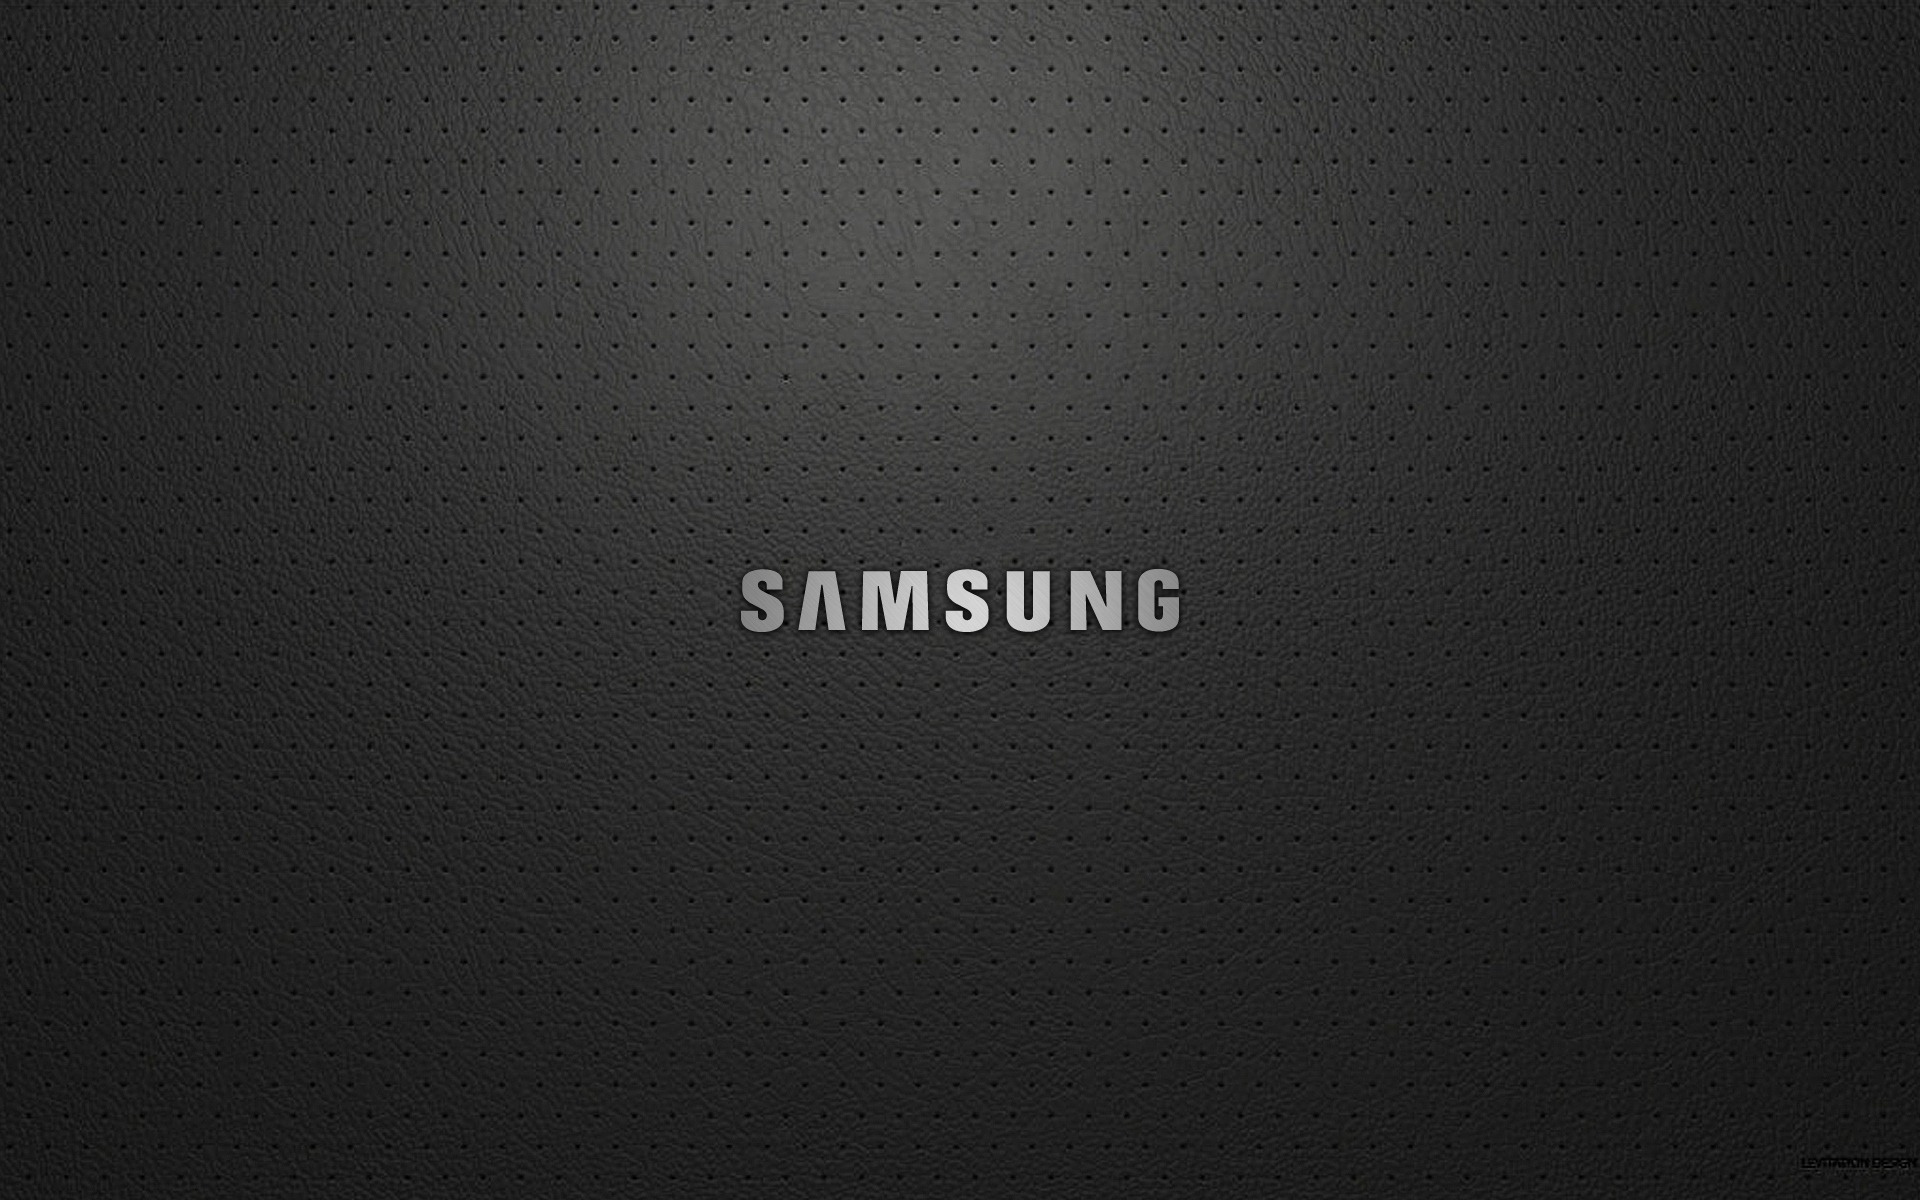 Fh Logo Samsung Mobile: Samsung Wallpapers Hd (34 Wallpapers)